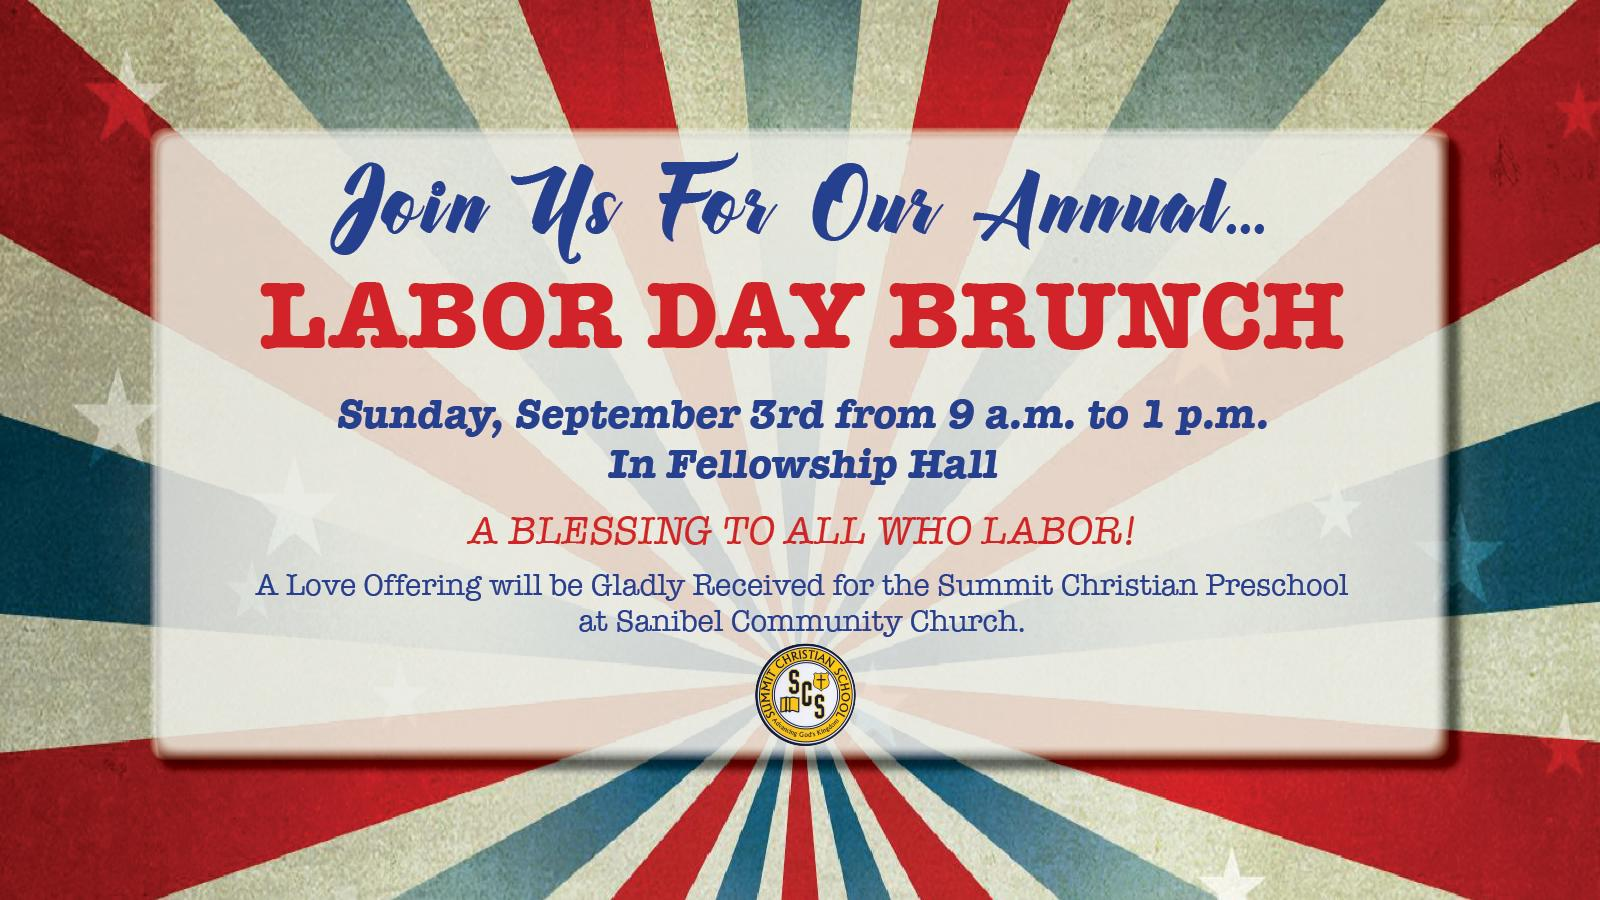 Labor Day Brunch